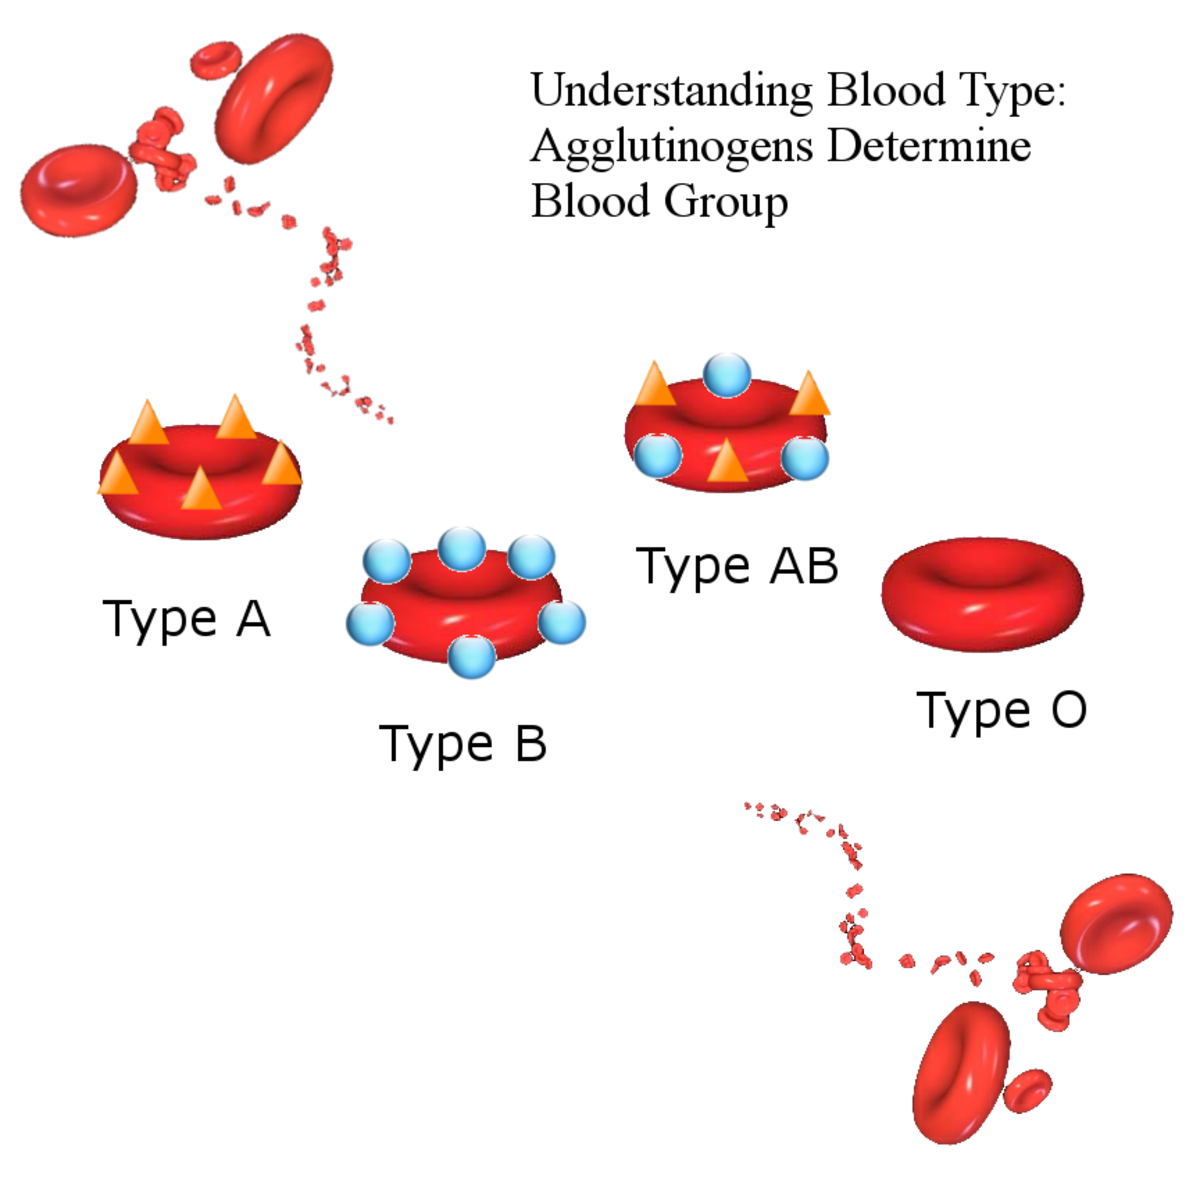 Blood type is determined by sugar-based antigens on the red blood cell surface. Those with type O blood do not have any antigens at all.